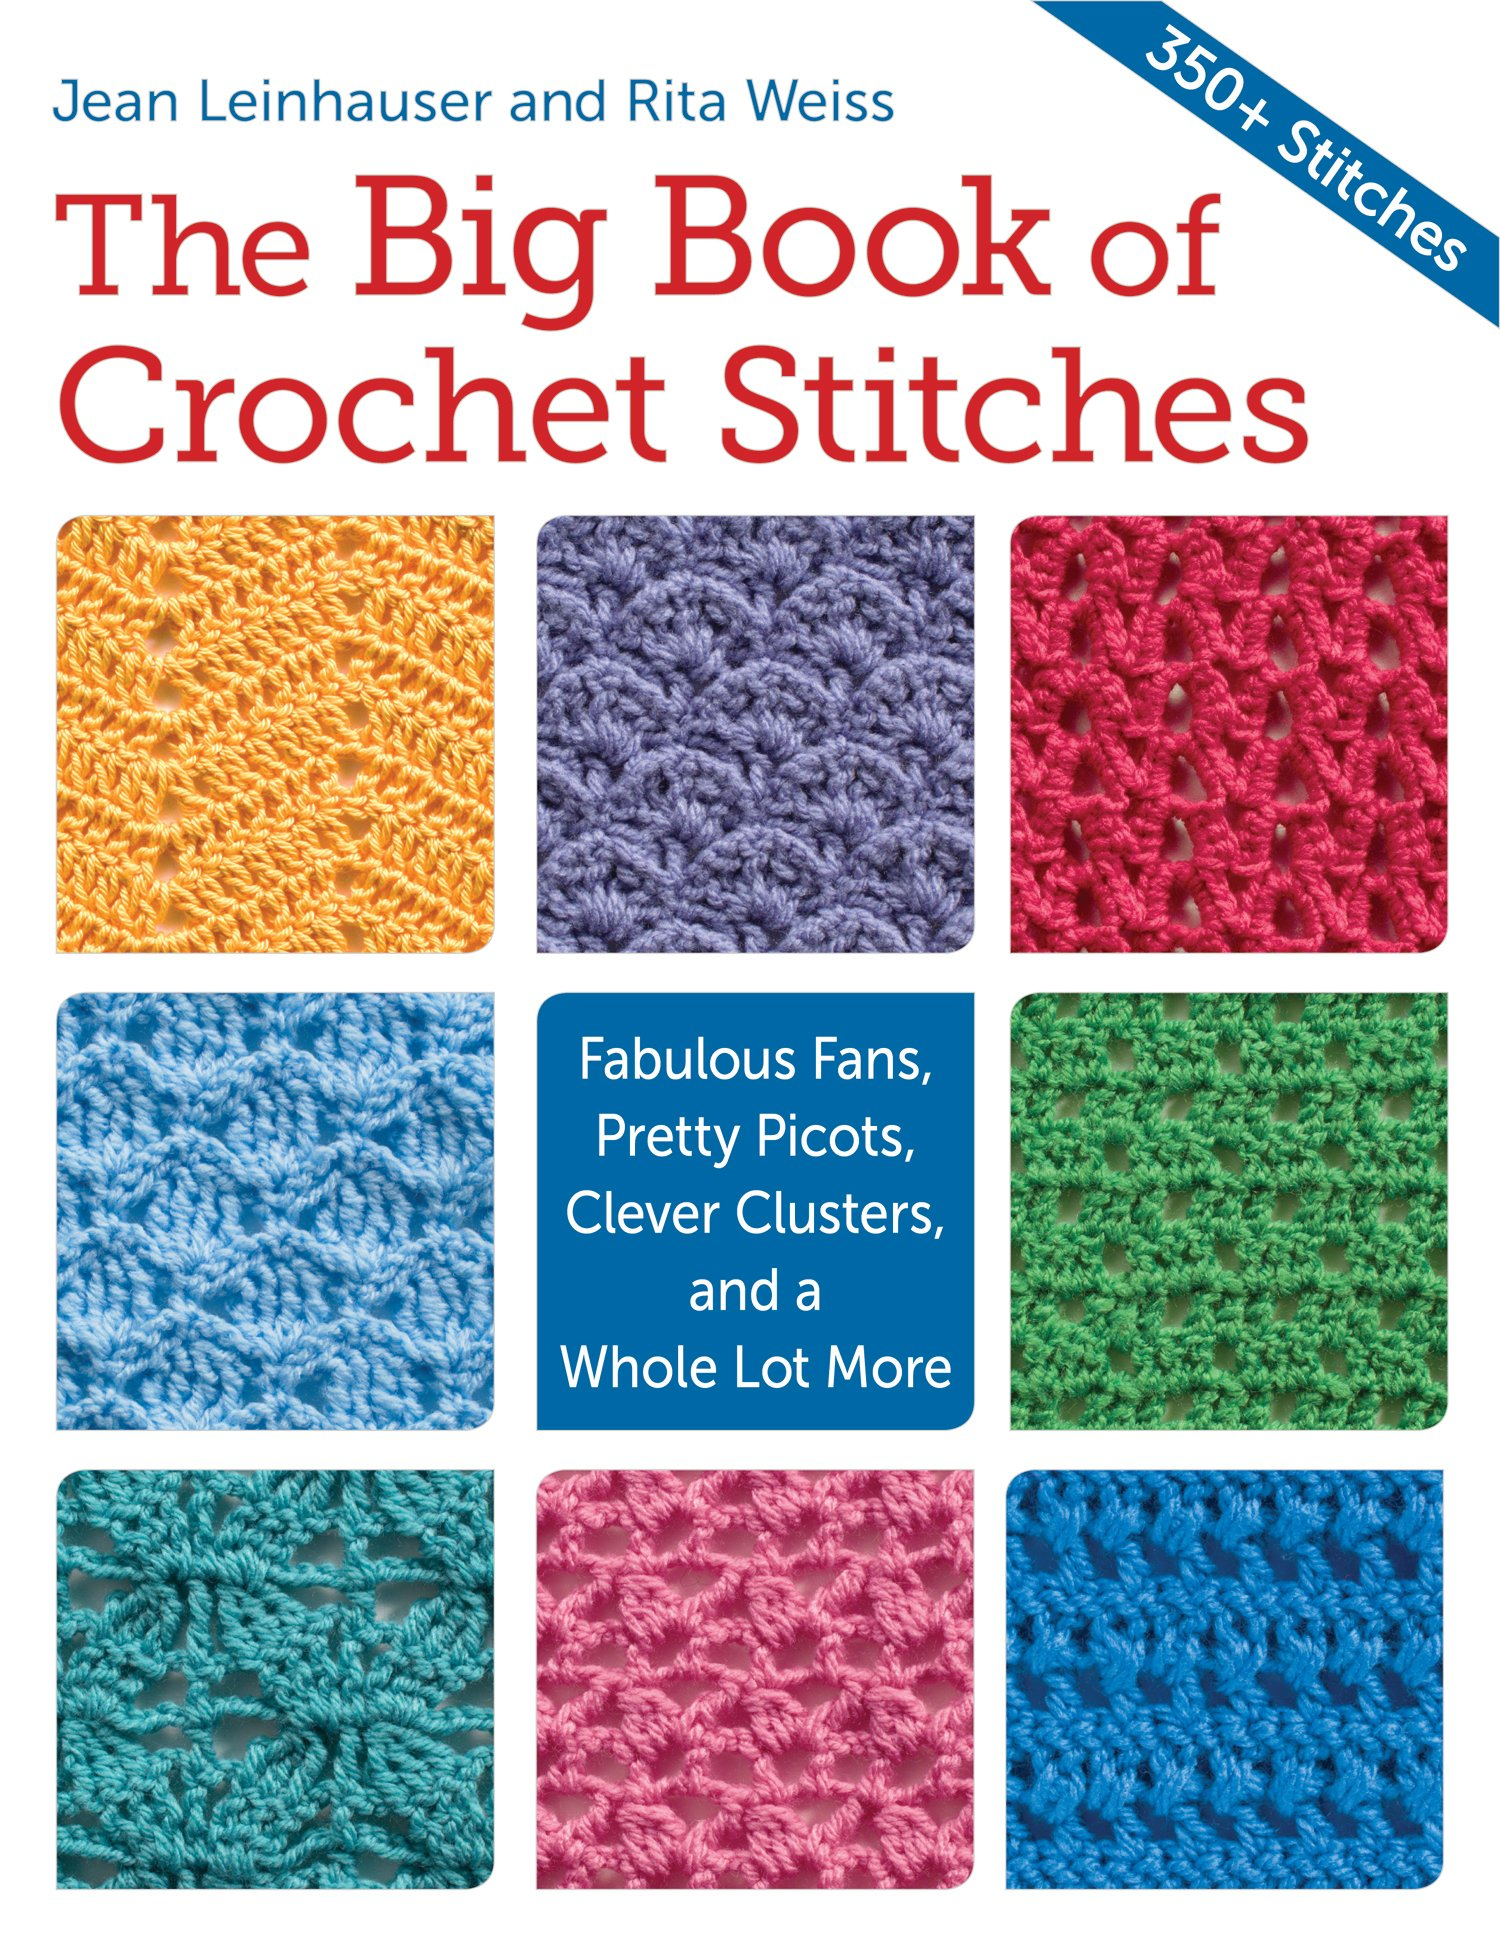 The Big Book of Crochet Stitches   Oombawka Design Crochet